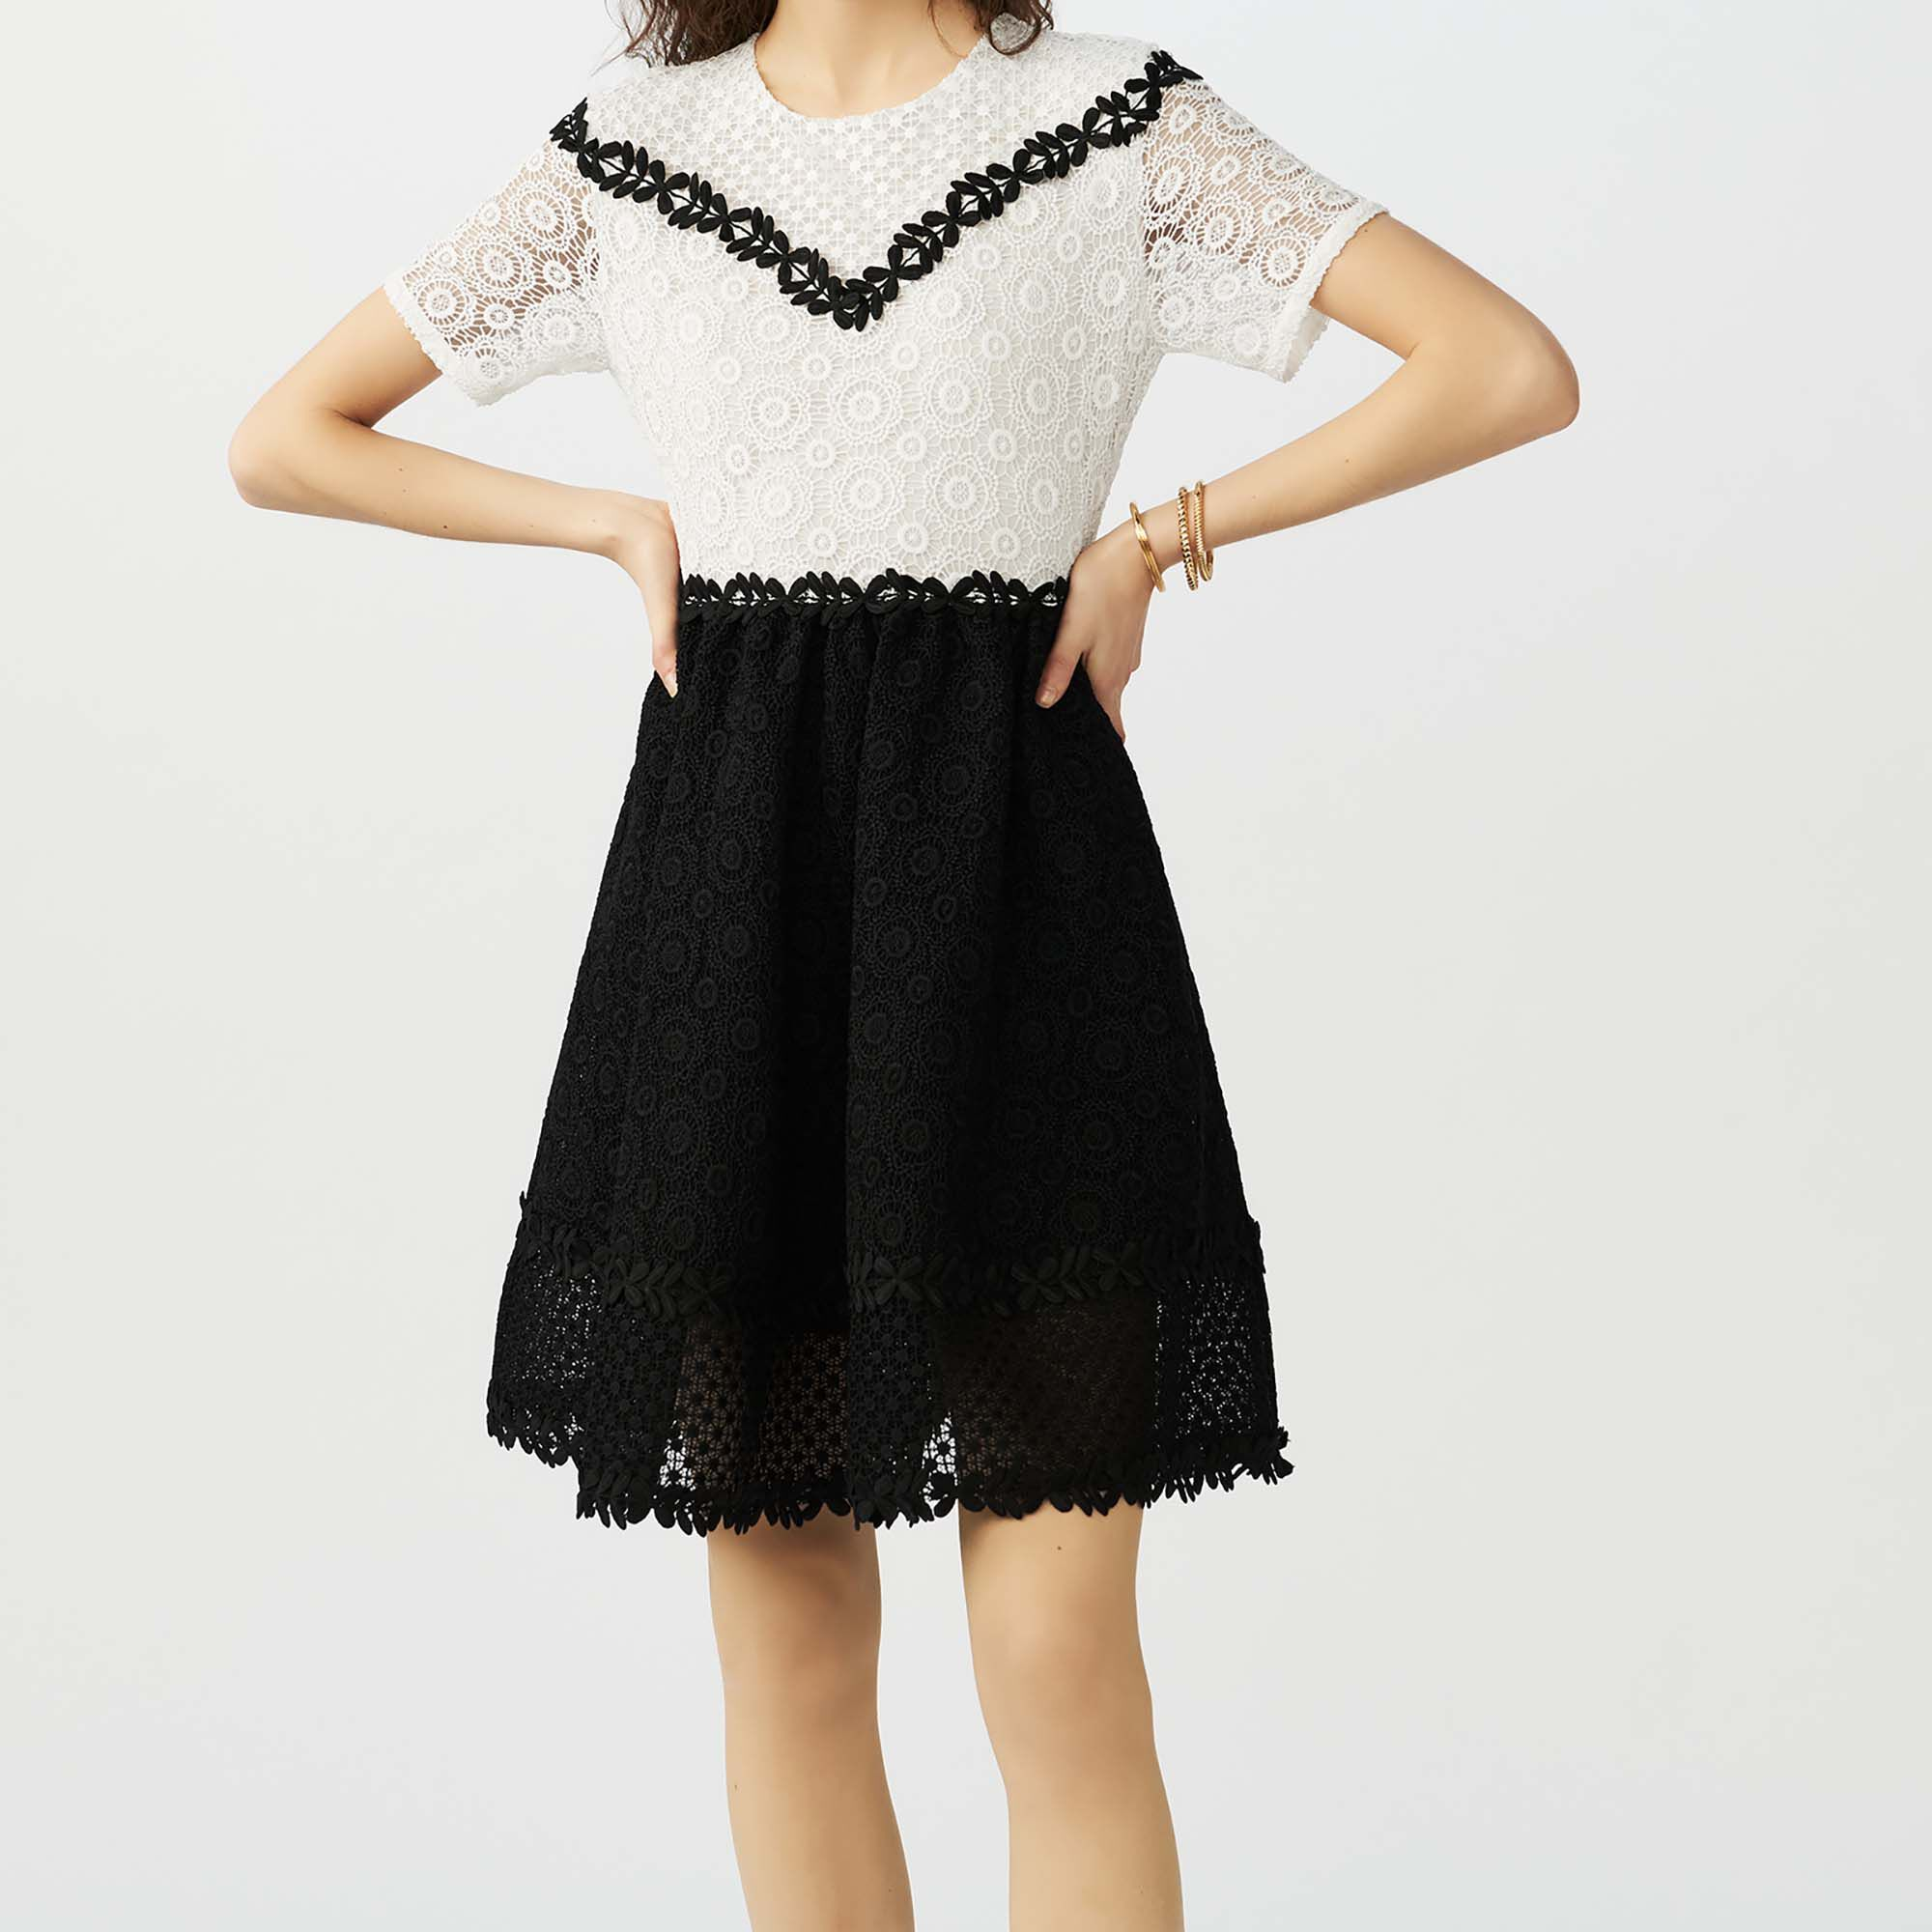 Skater dress in bicolored lace,